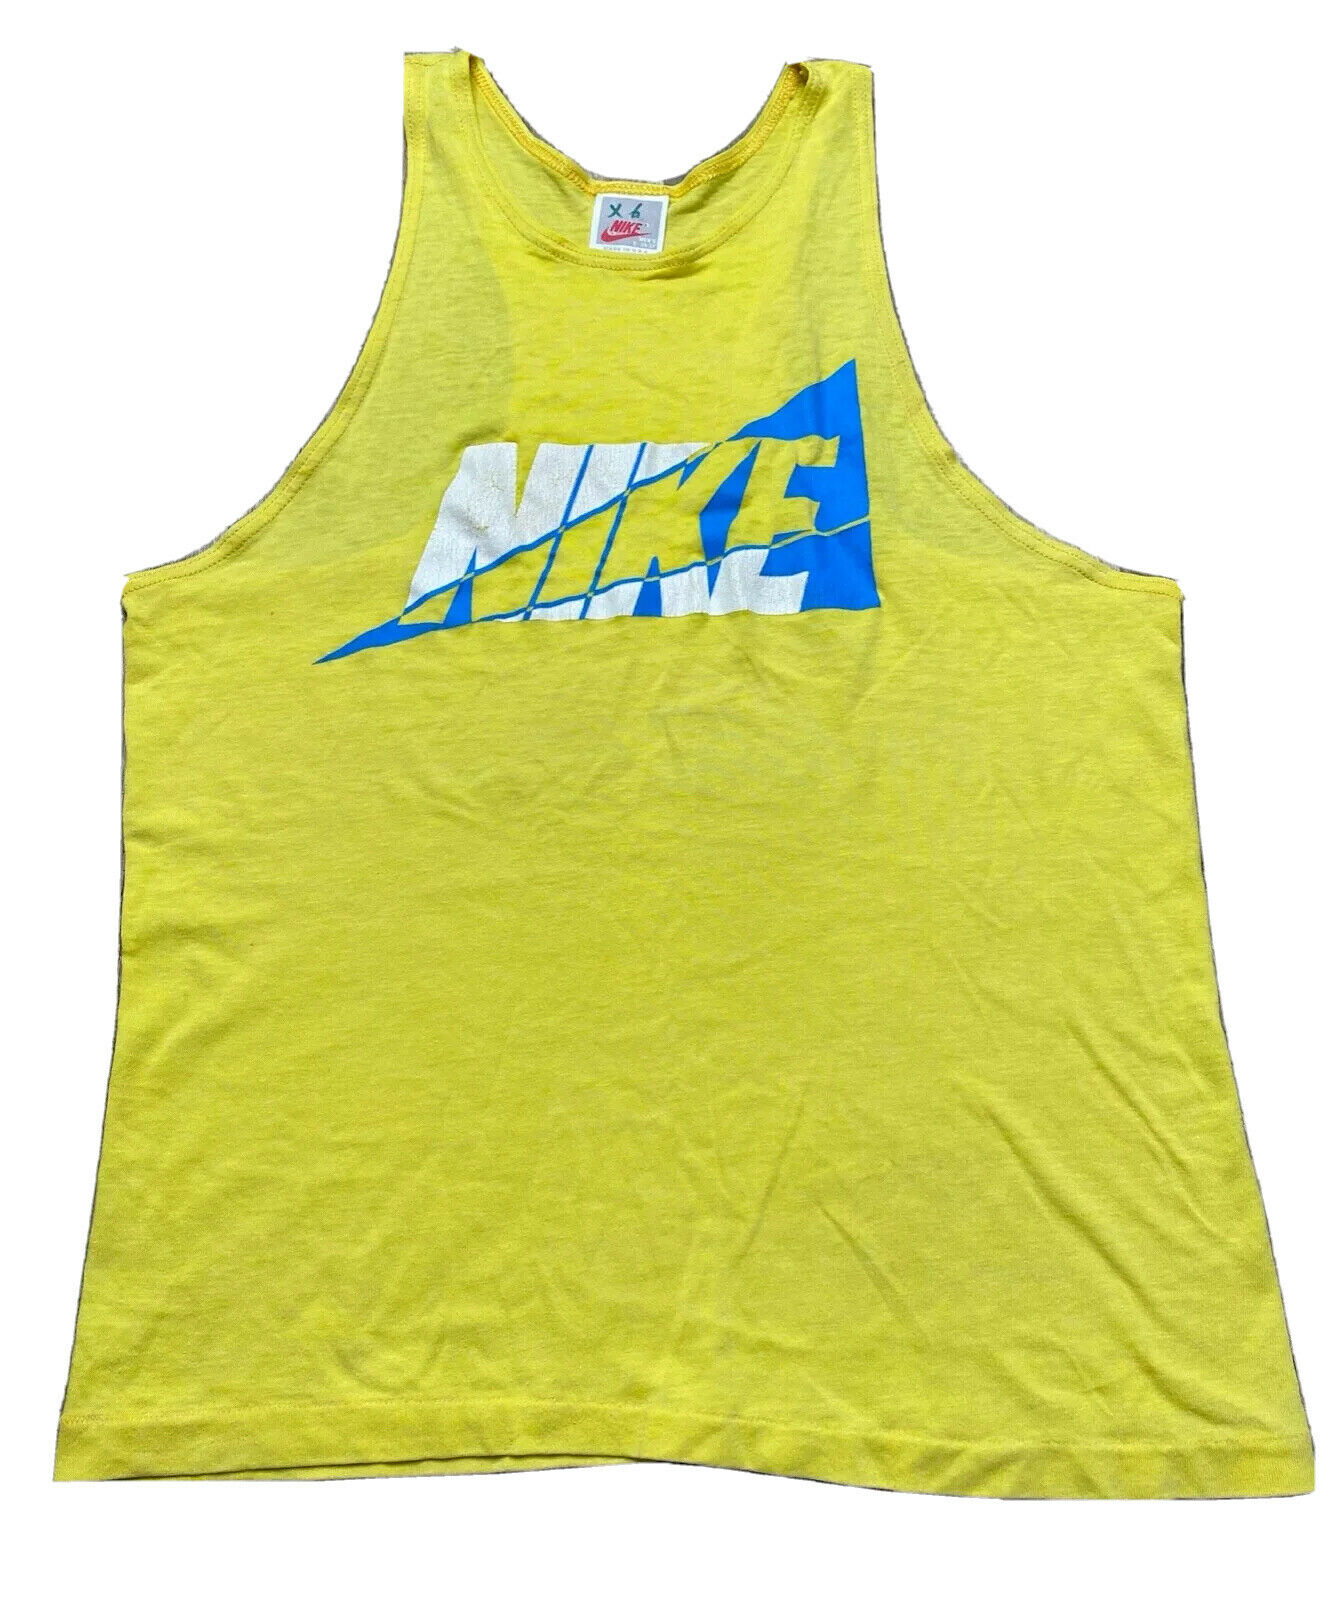 Vintage 90's Men's Nike Yellow Big Spell Out Blue & White Triangle Tank Sz S